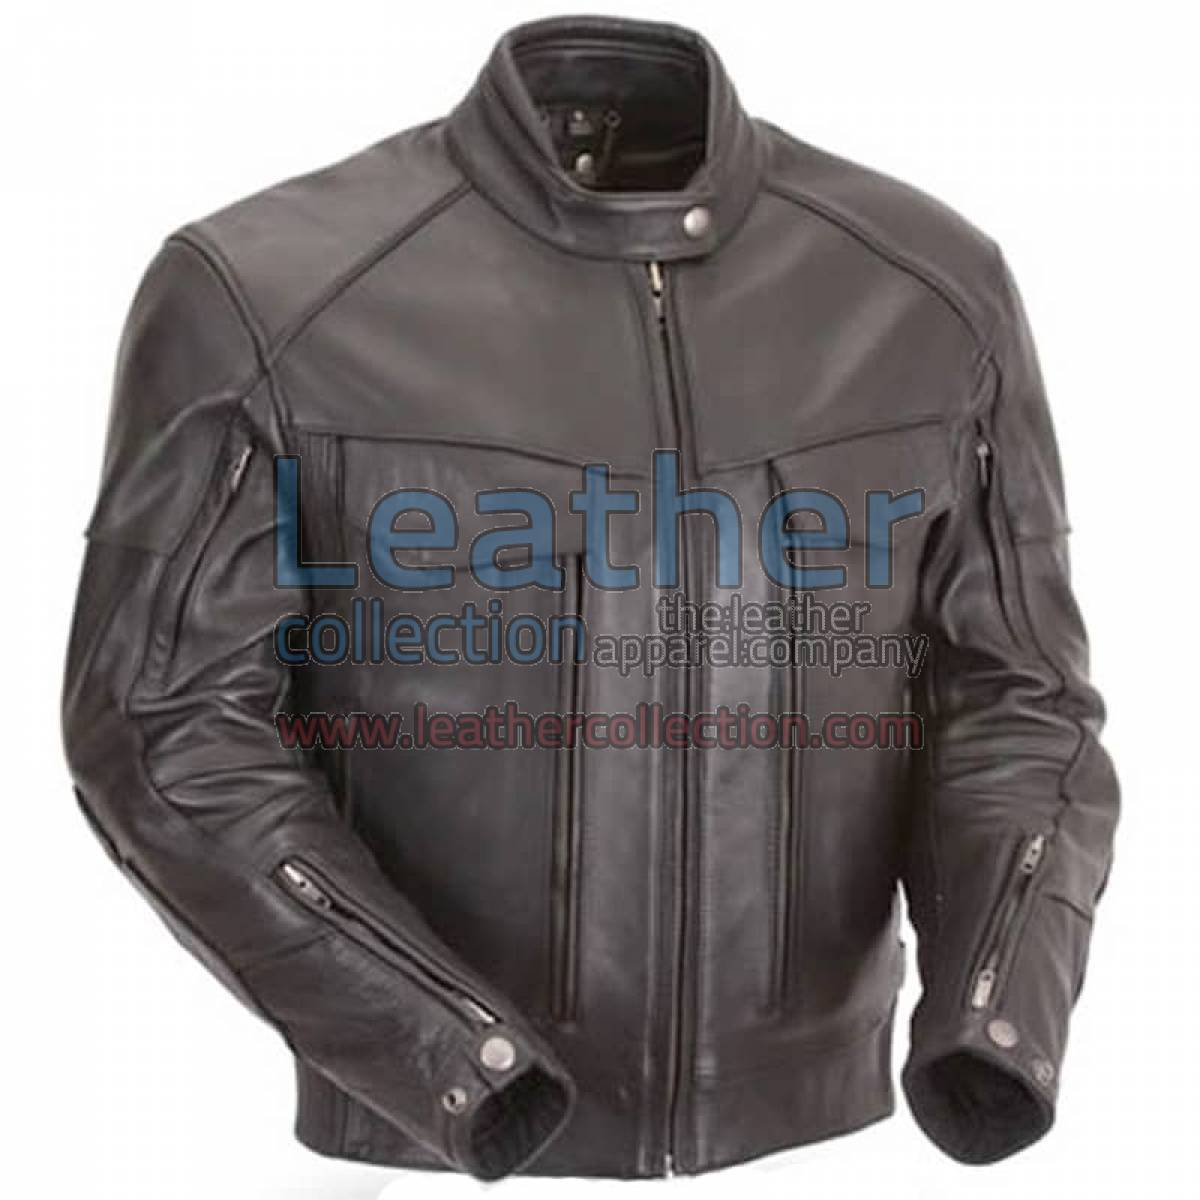 Naked Leather Riding Jacket with Gun Pockets & Side Stretch Panels